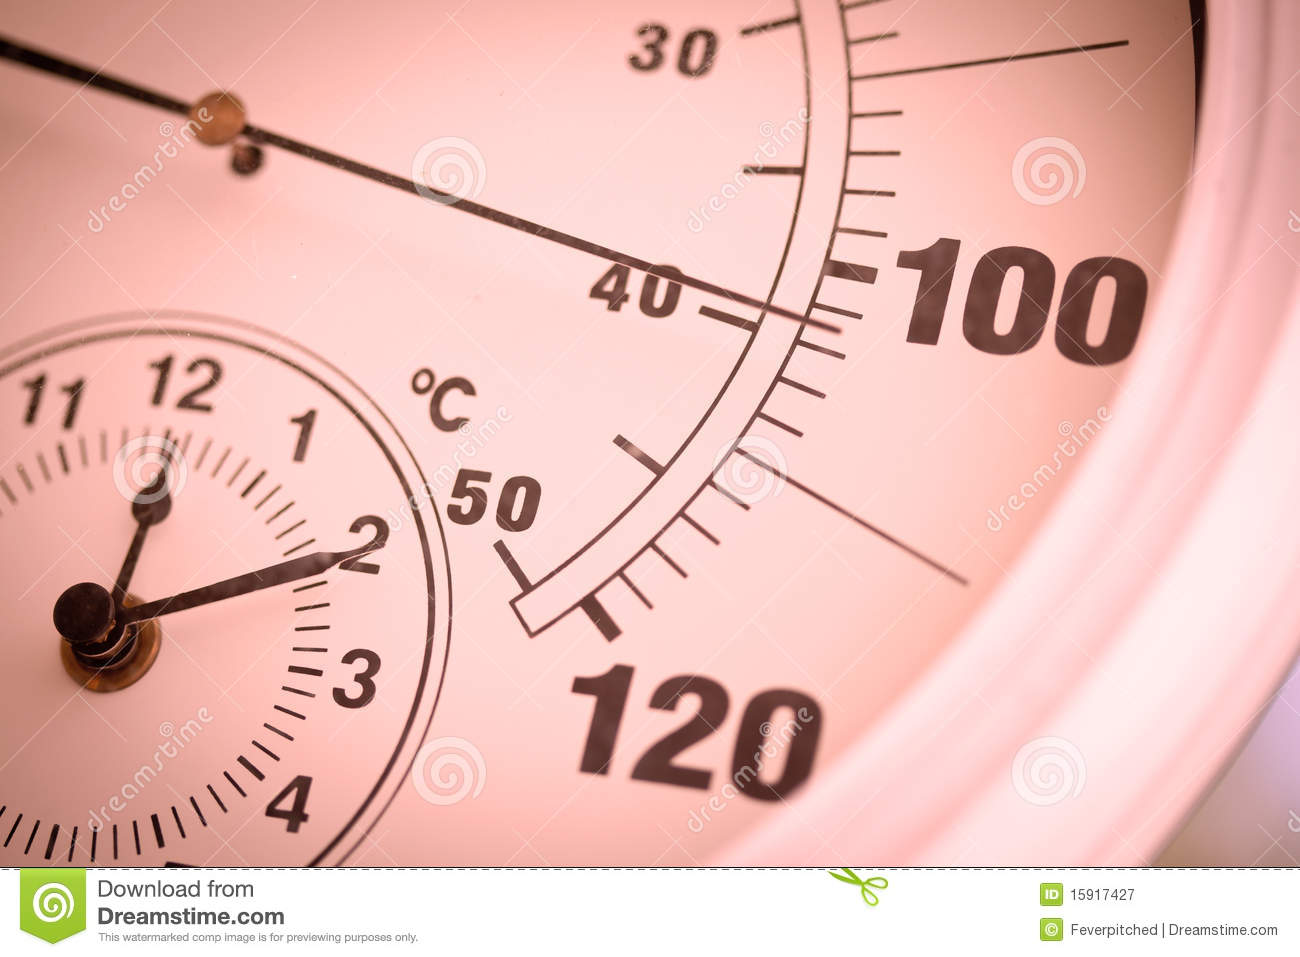 Colorized Round Thermometer Over 100 Degrees Royalty Free